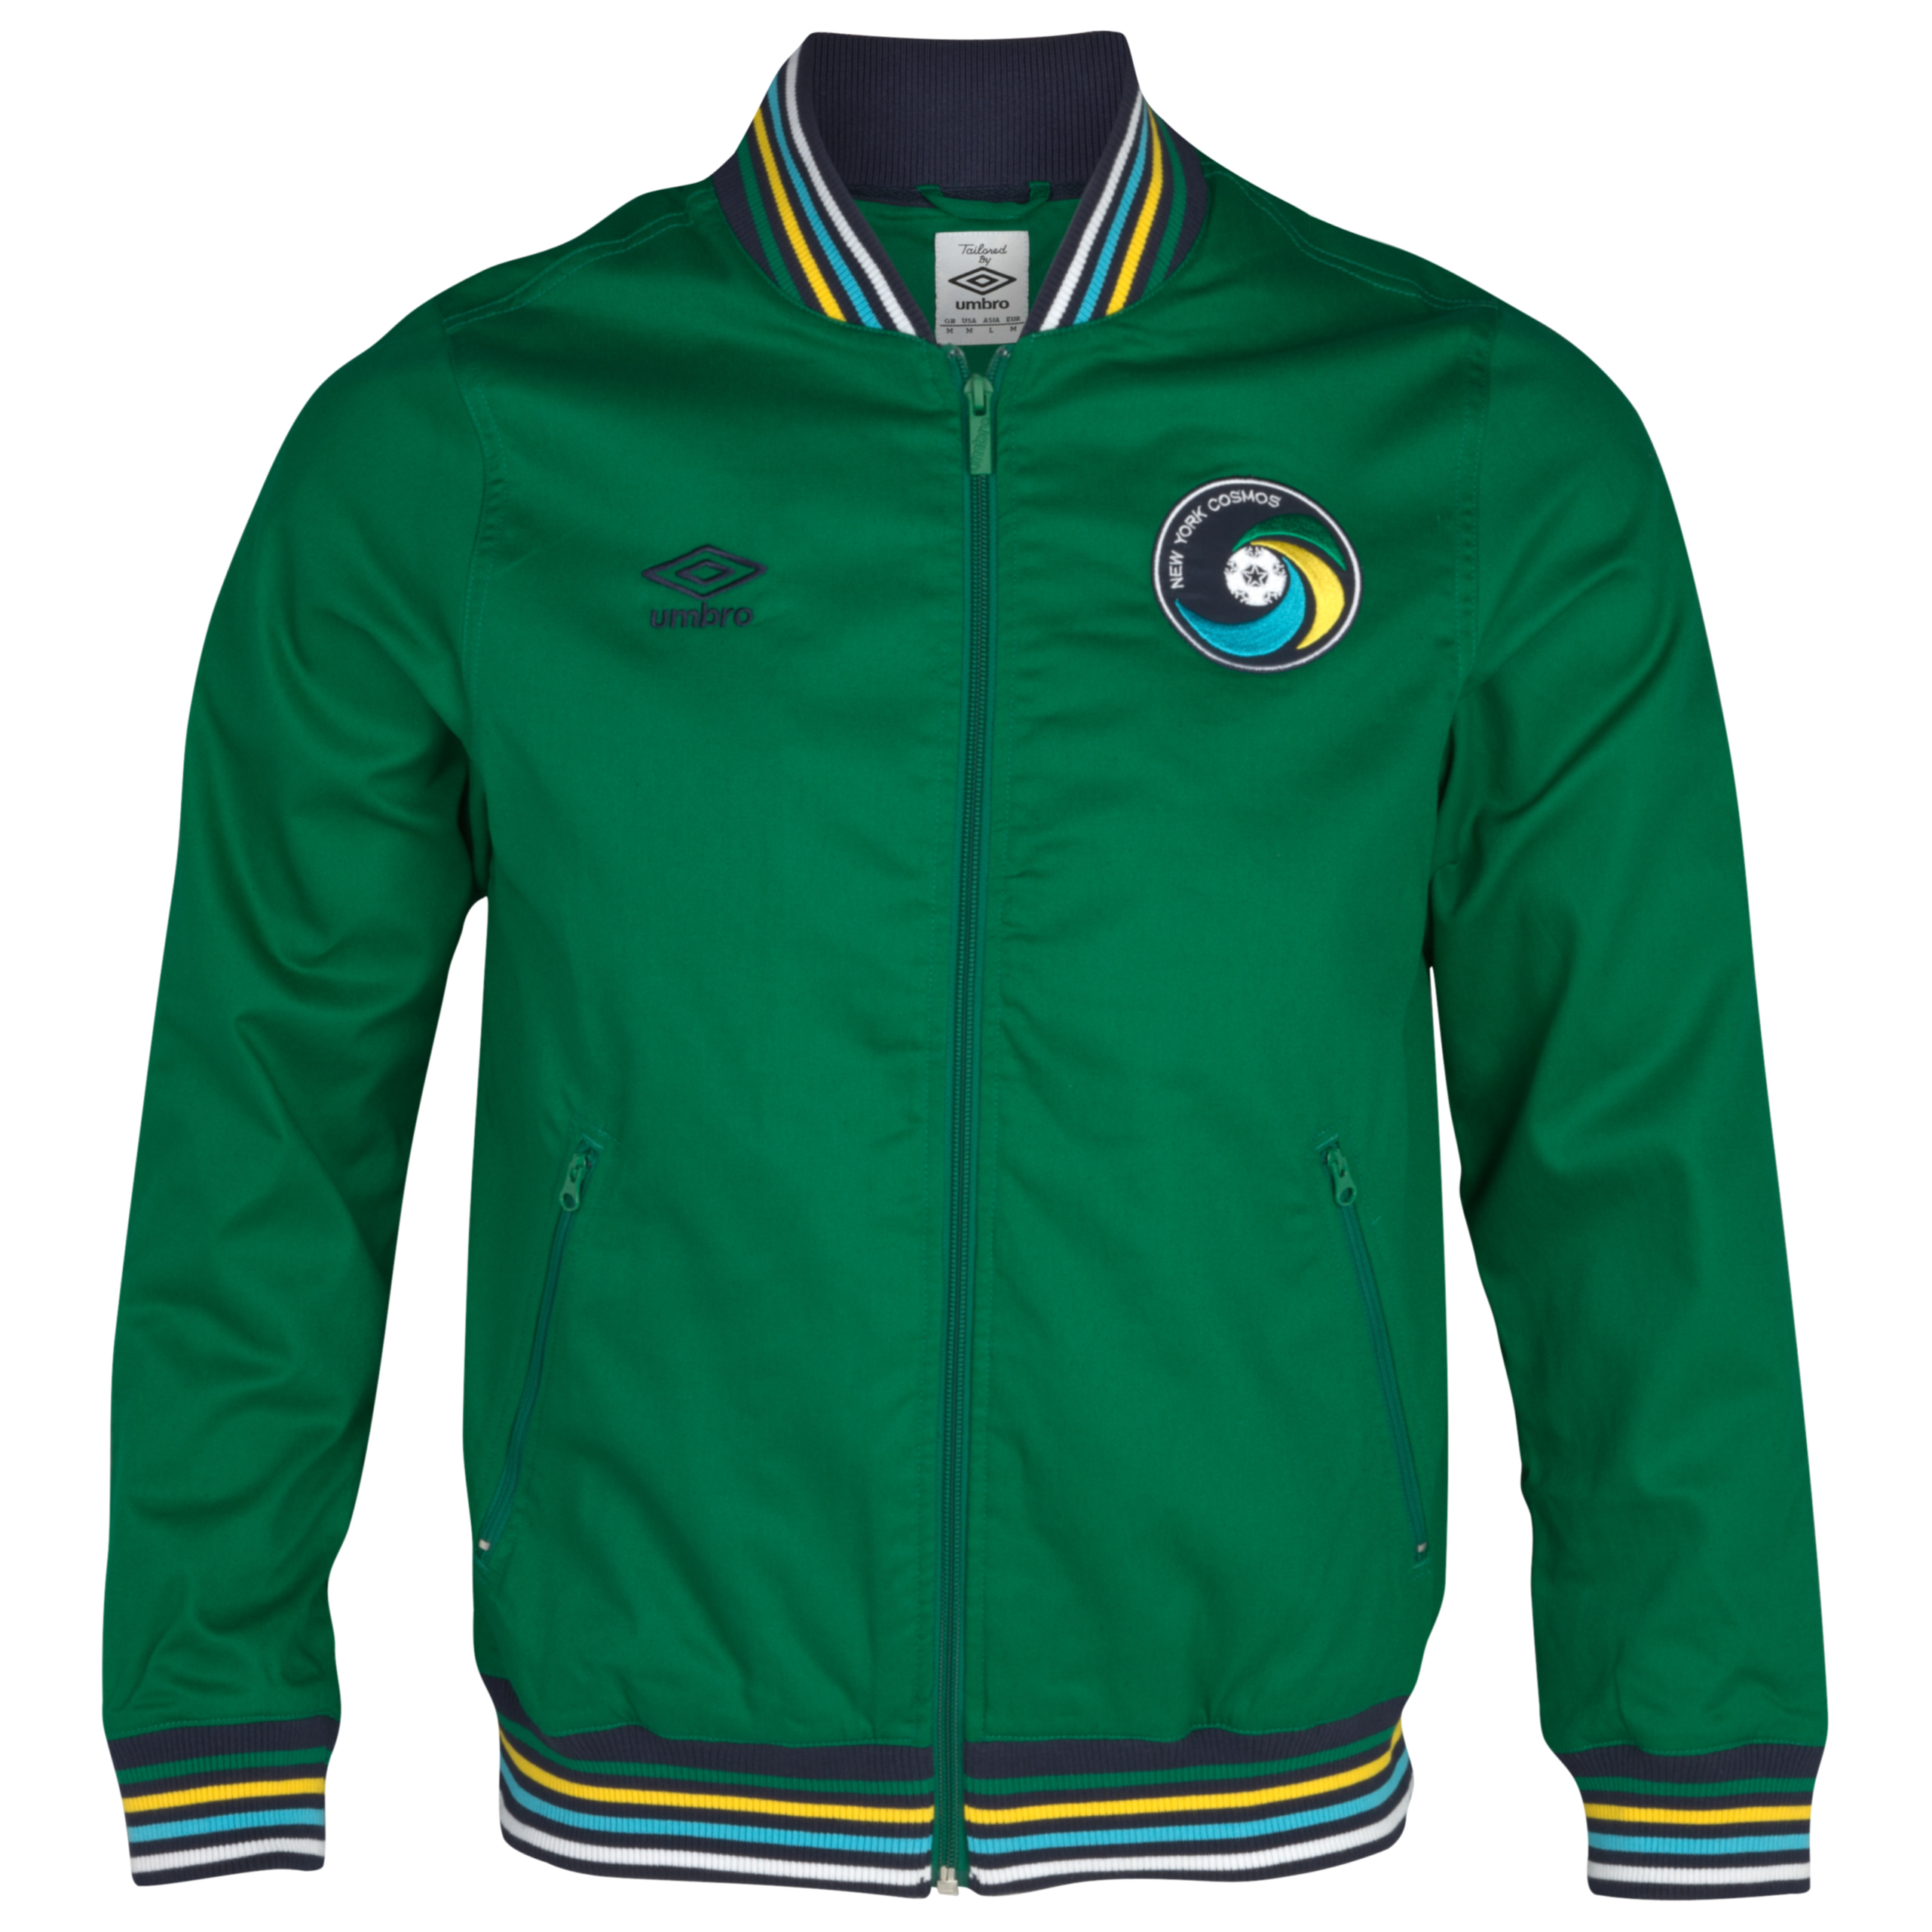 New York Cosmos Ramsay Jacket - Pine Green/Dark Navy